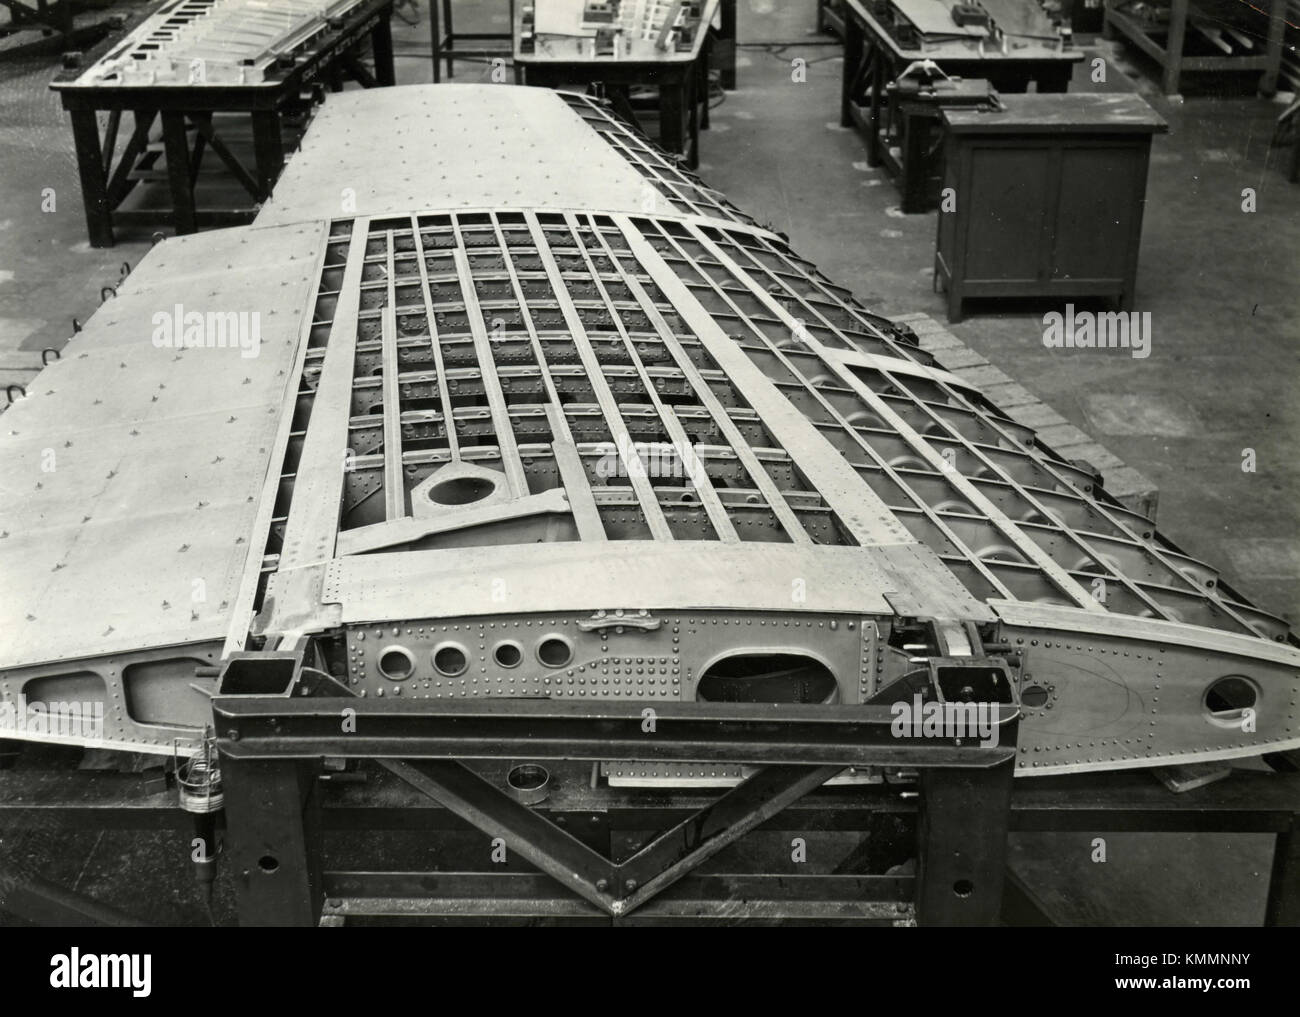 Assembling the wing of FIAT G.80 airplane, Italy 1950s - Stock Image